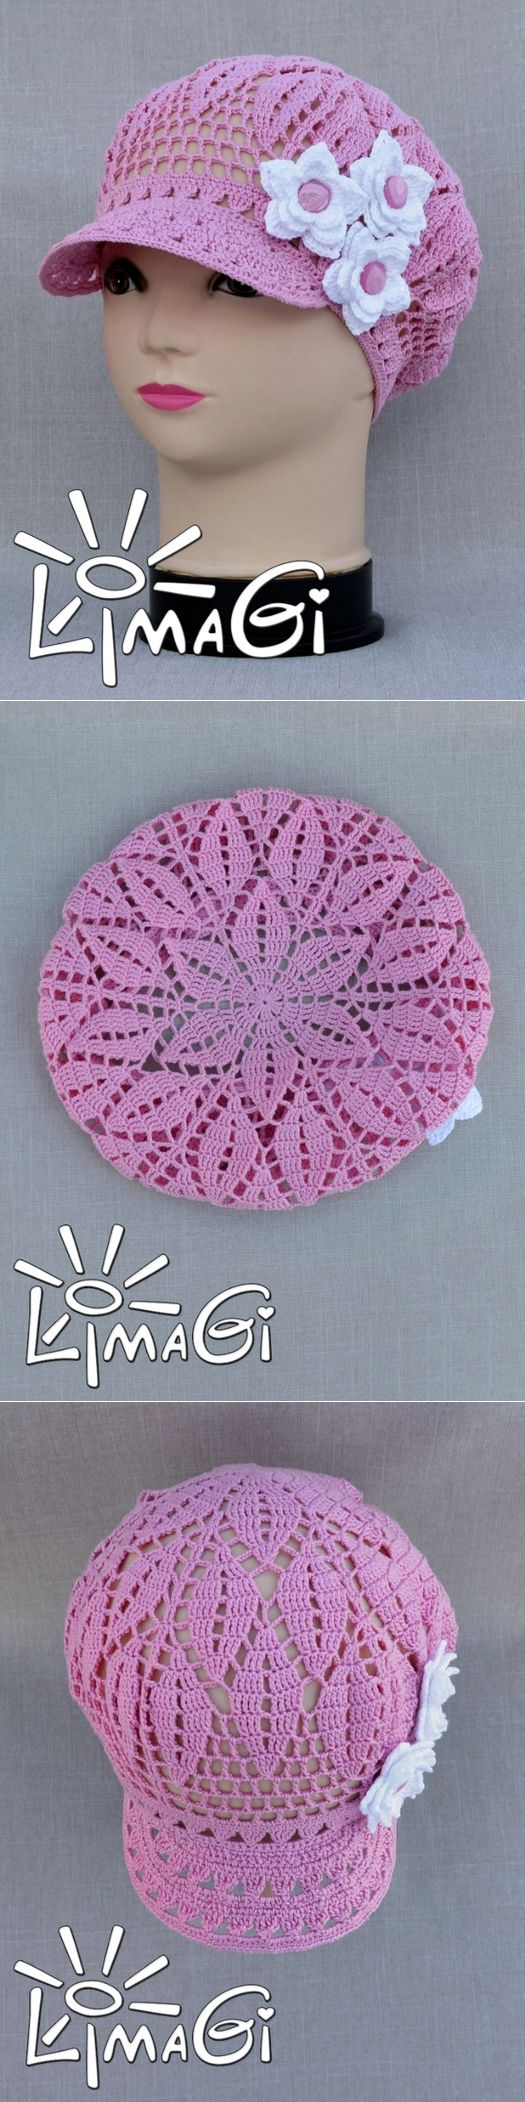 best boina e boné em crochê images on Pinterest Hat crochet